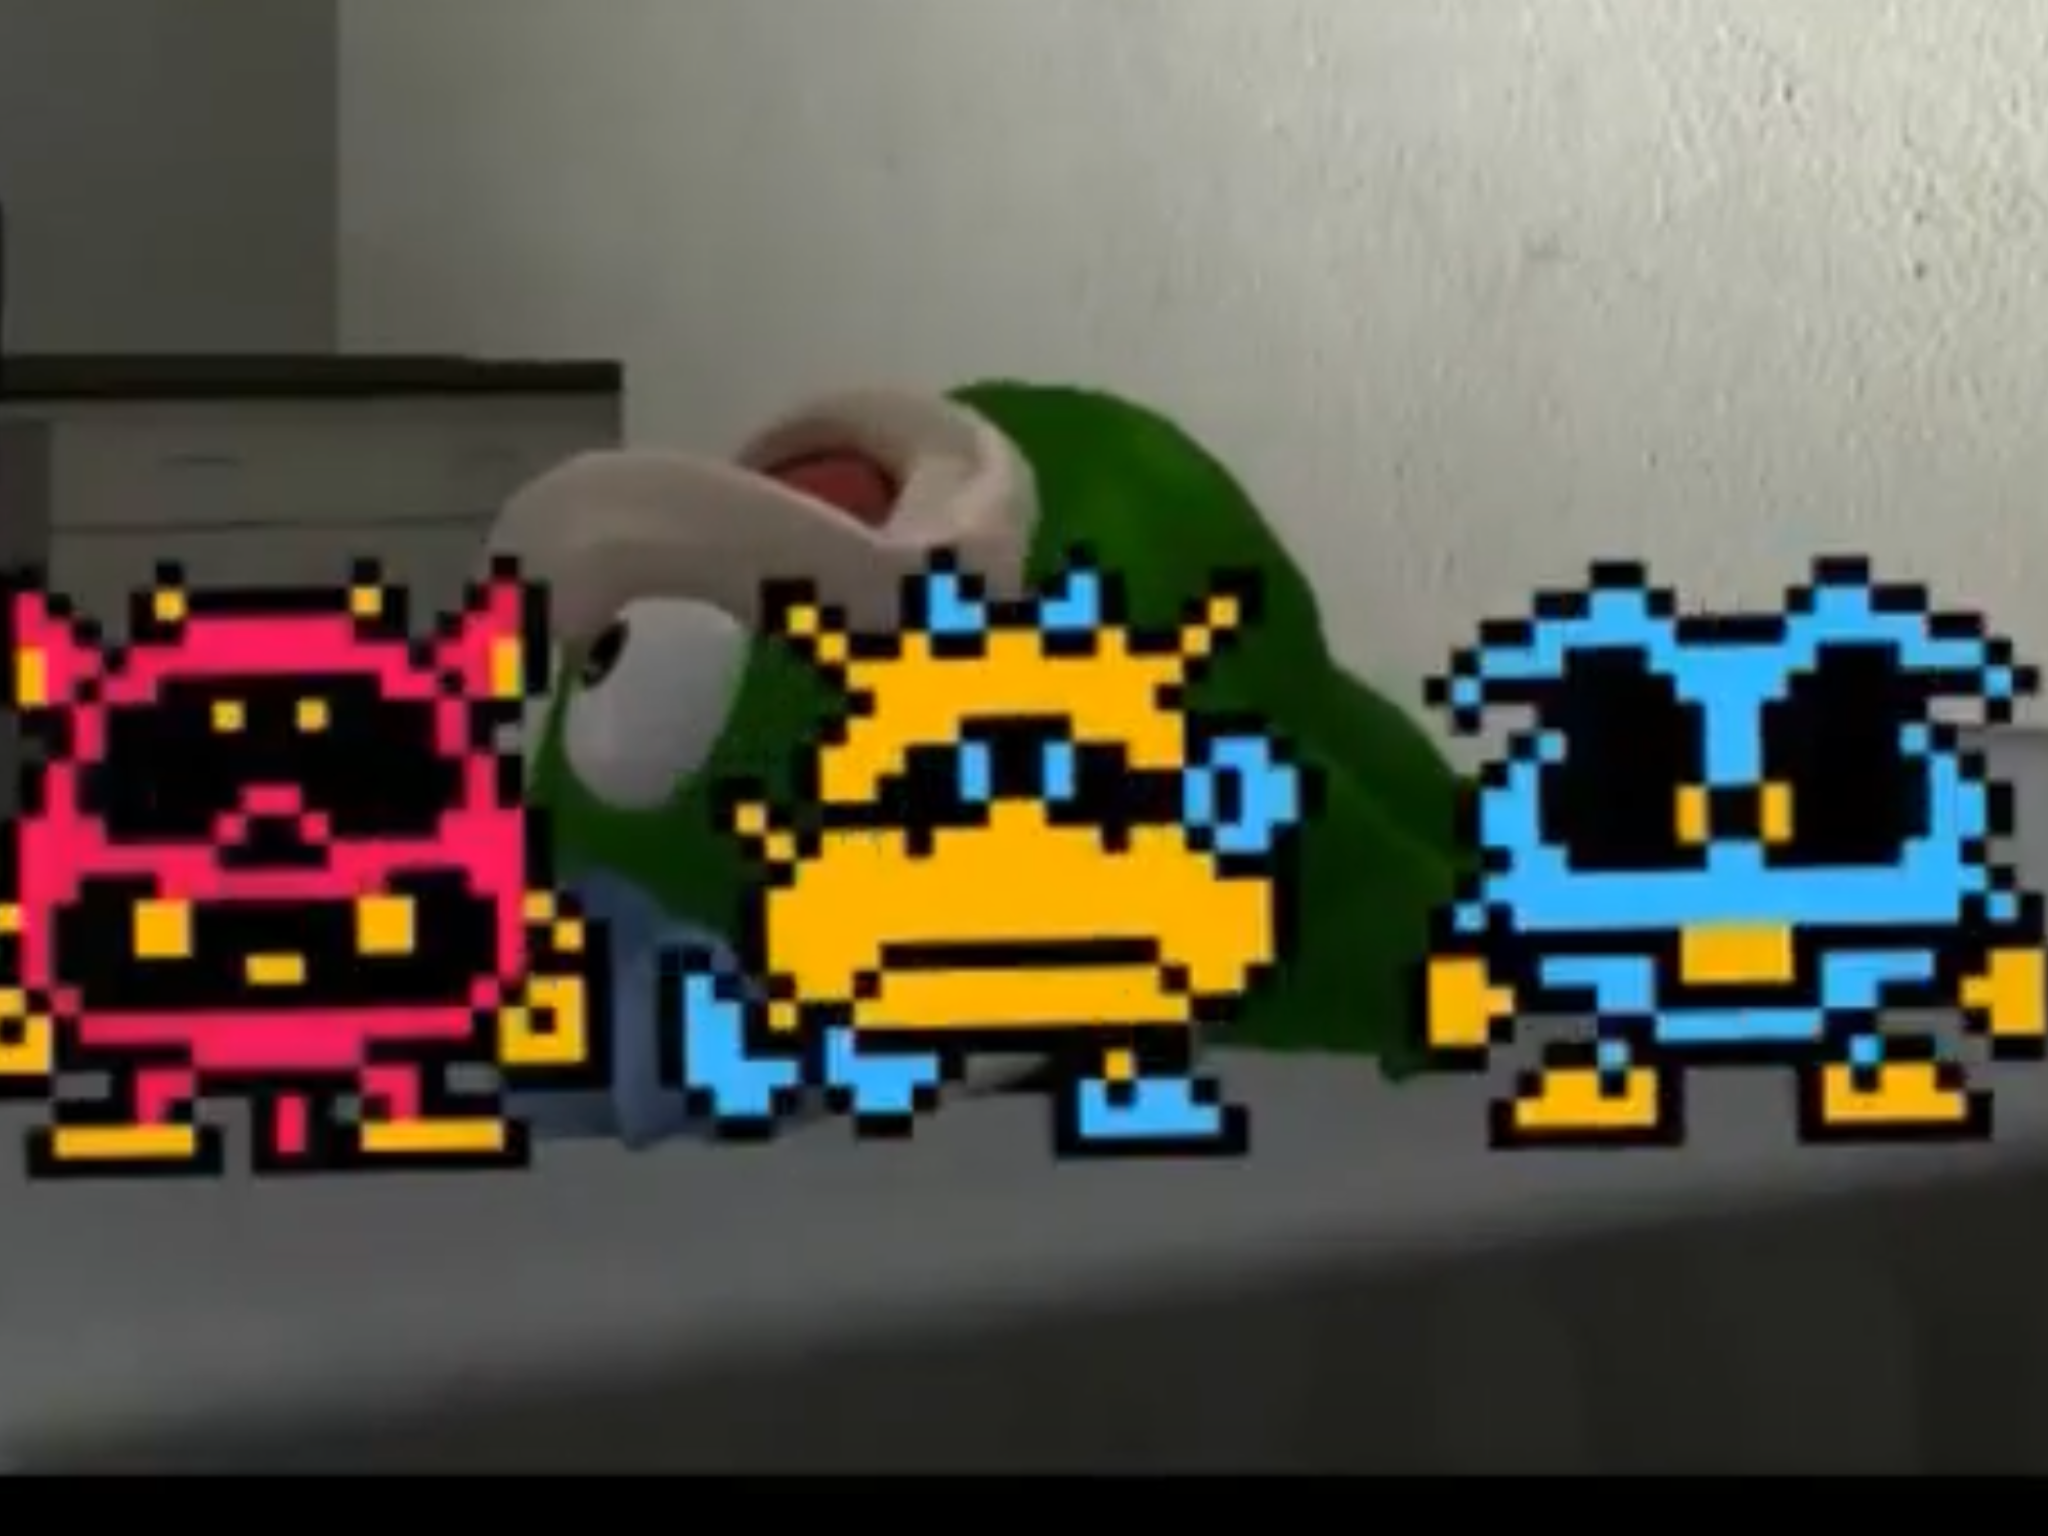 Viruses (Dr. Mario)